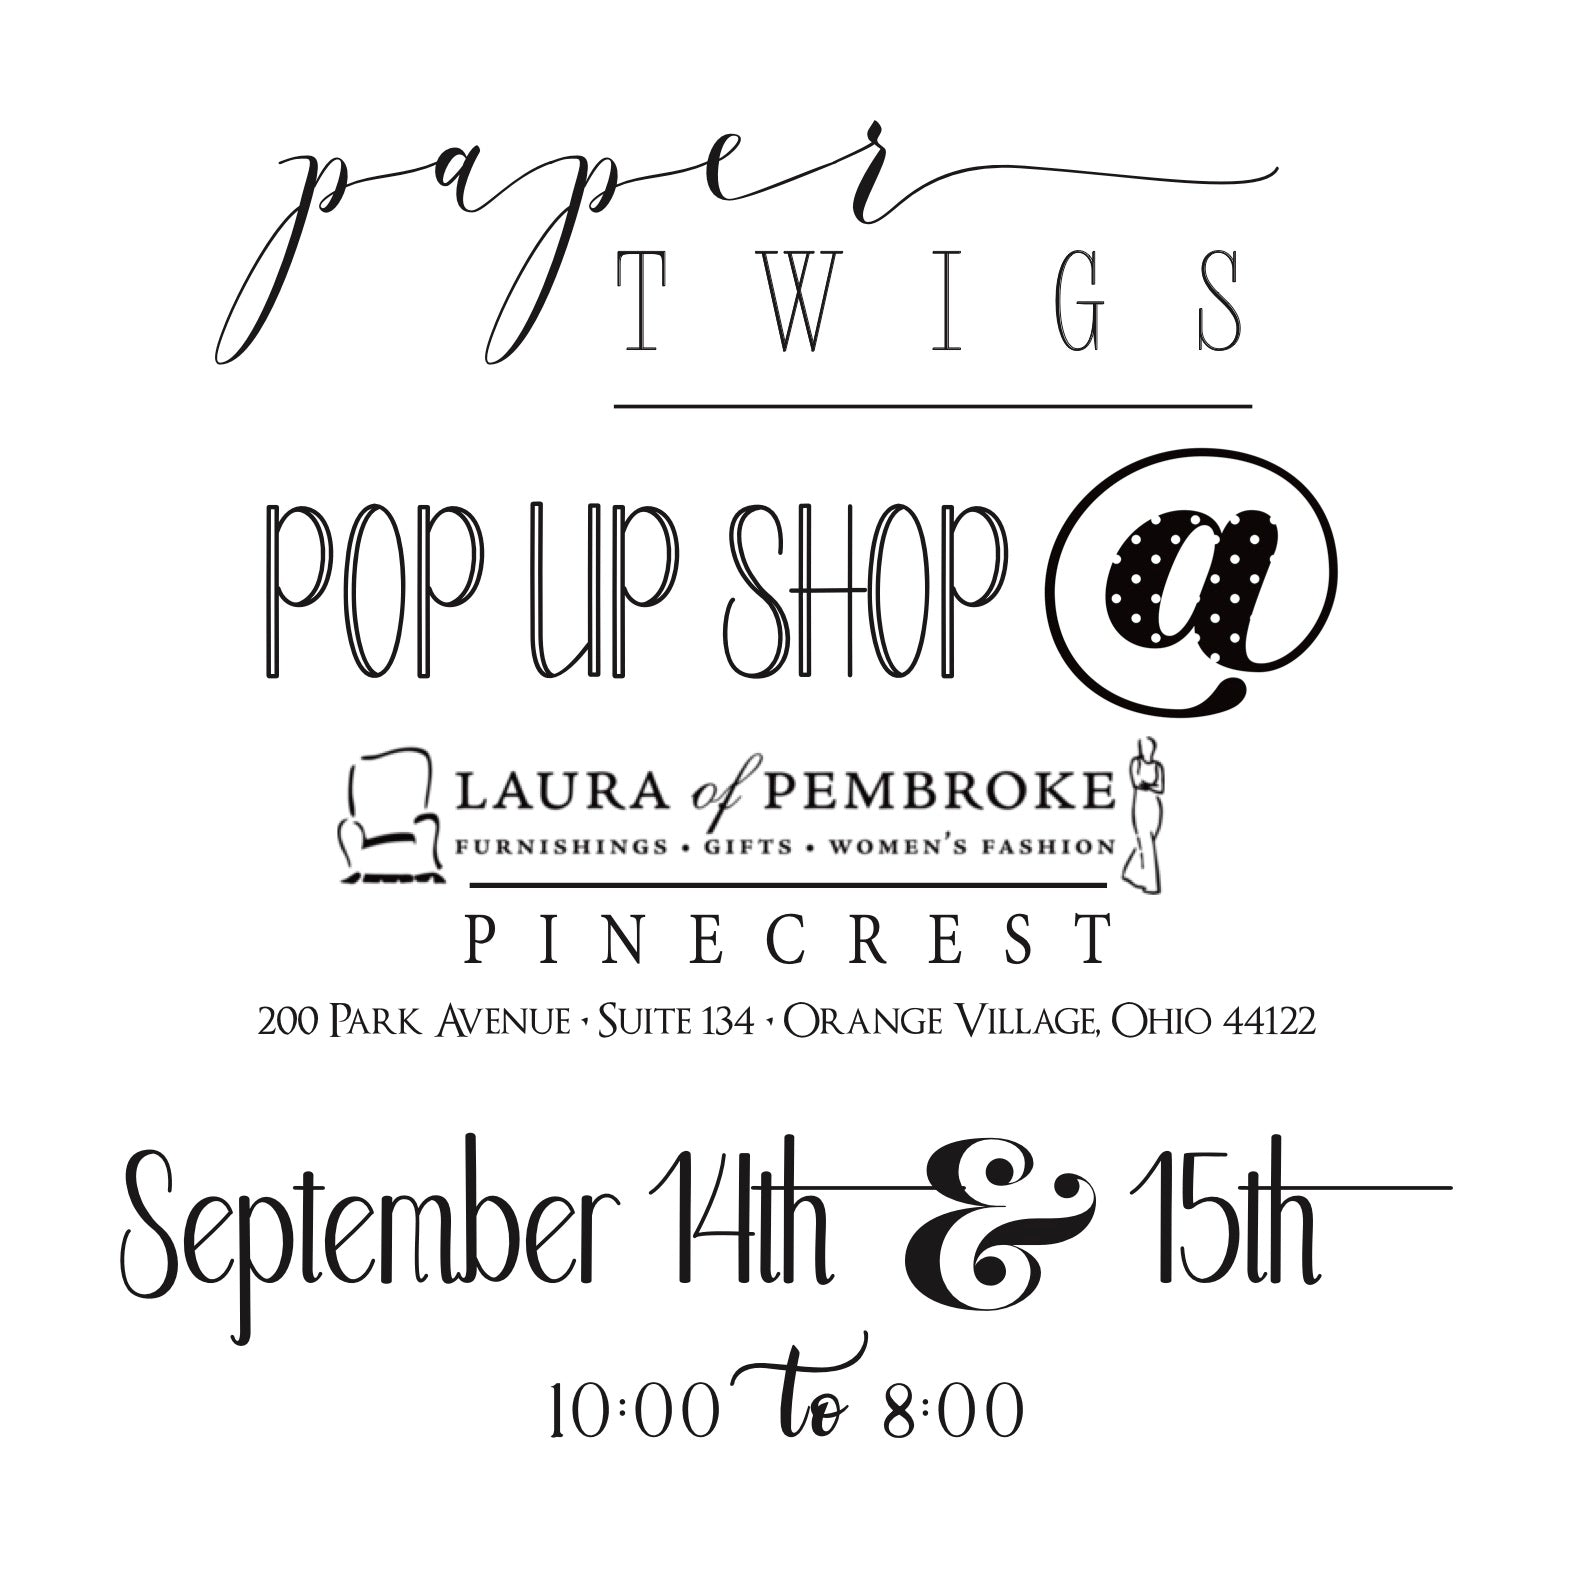 Paper Twigs and Laura of Pembroke Pop Up Shop